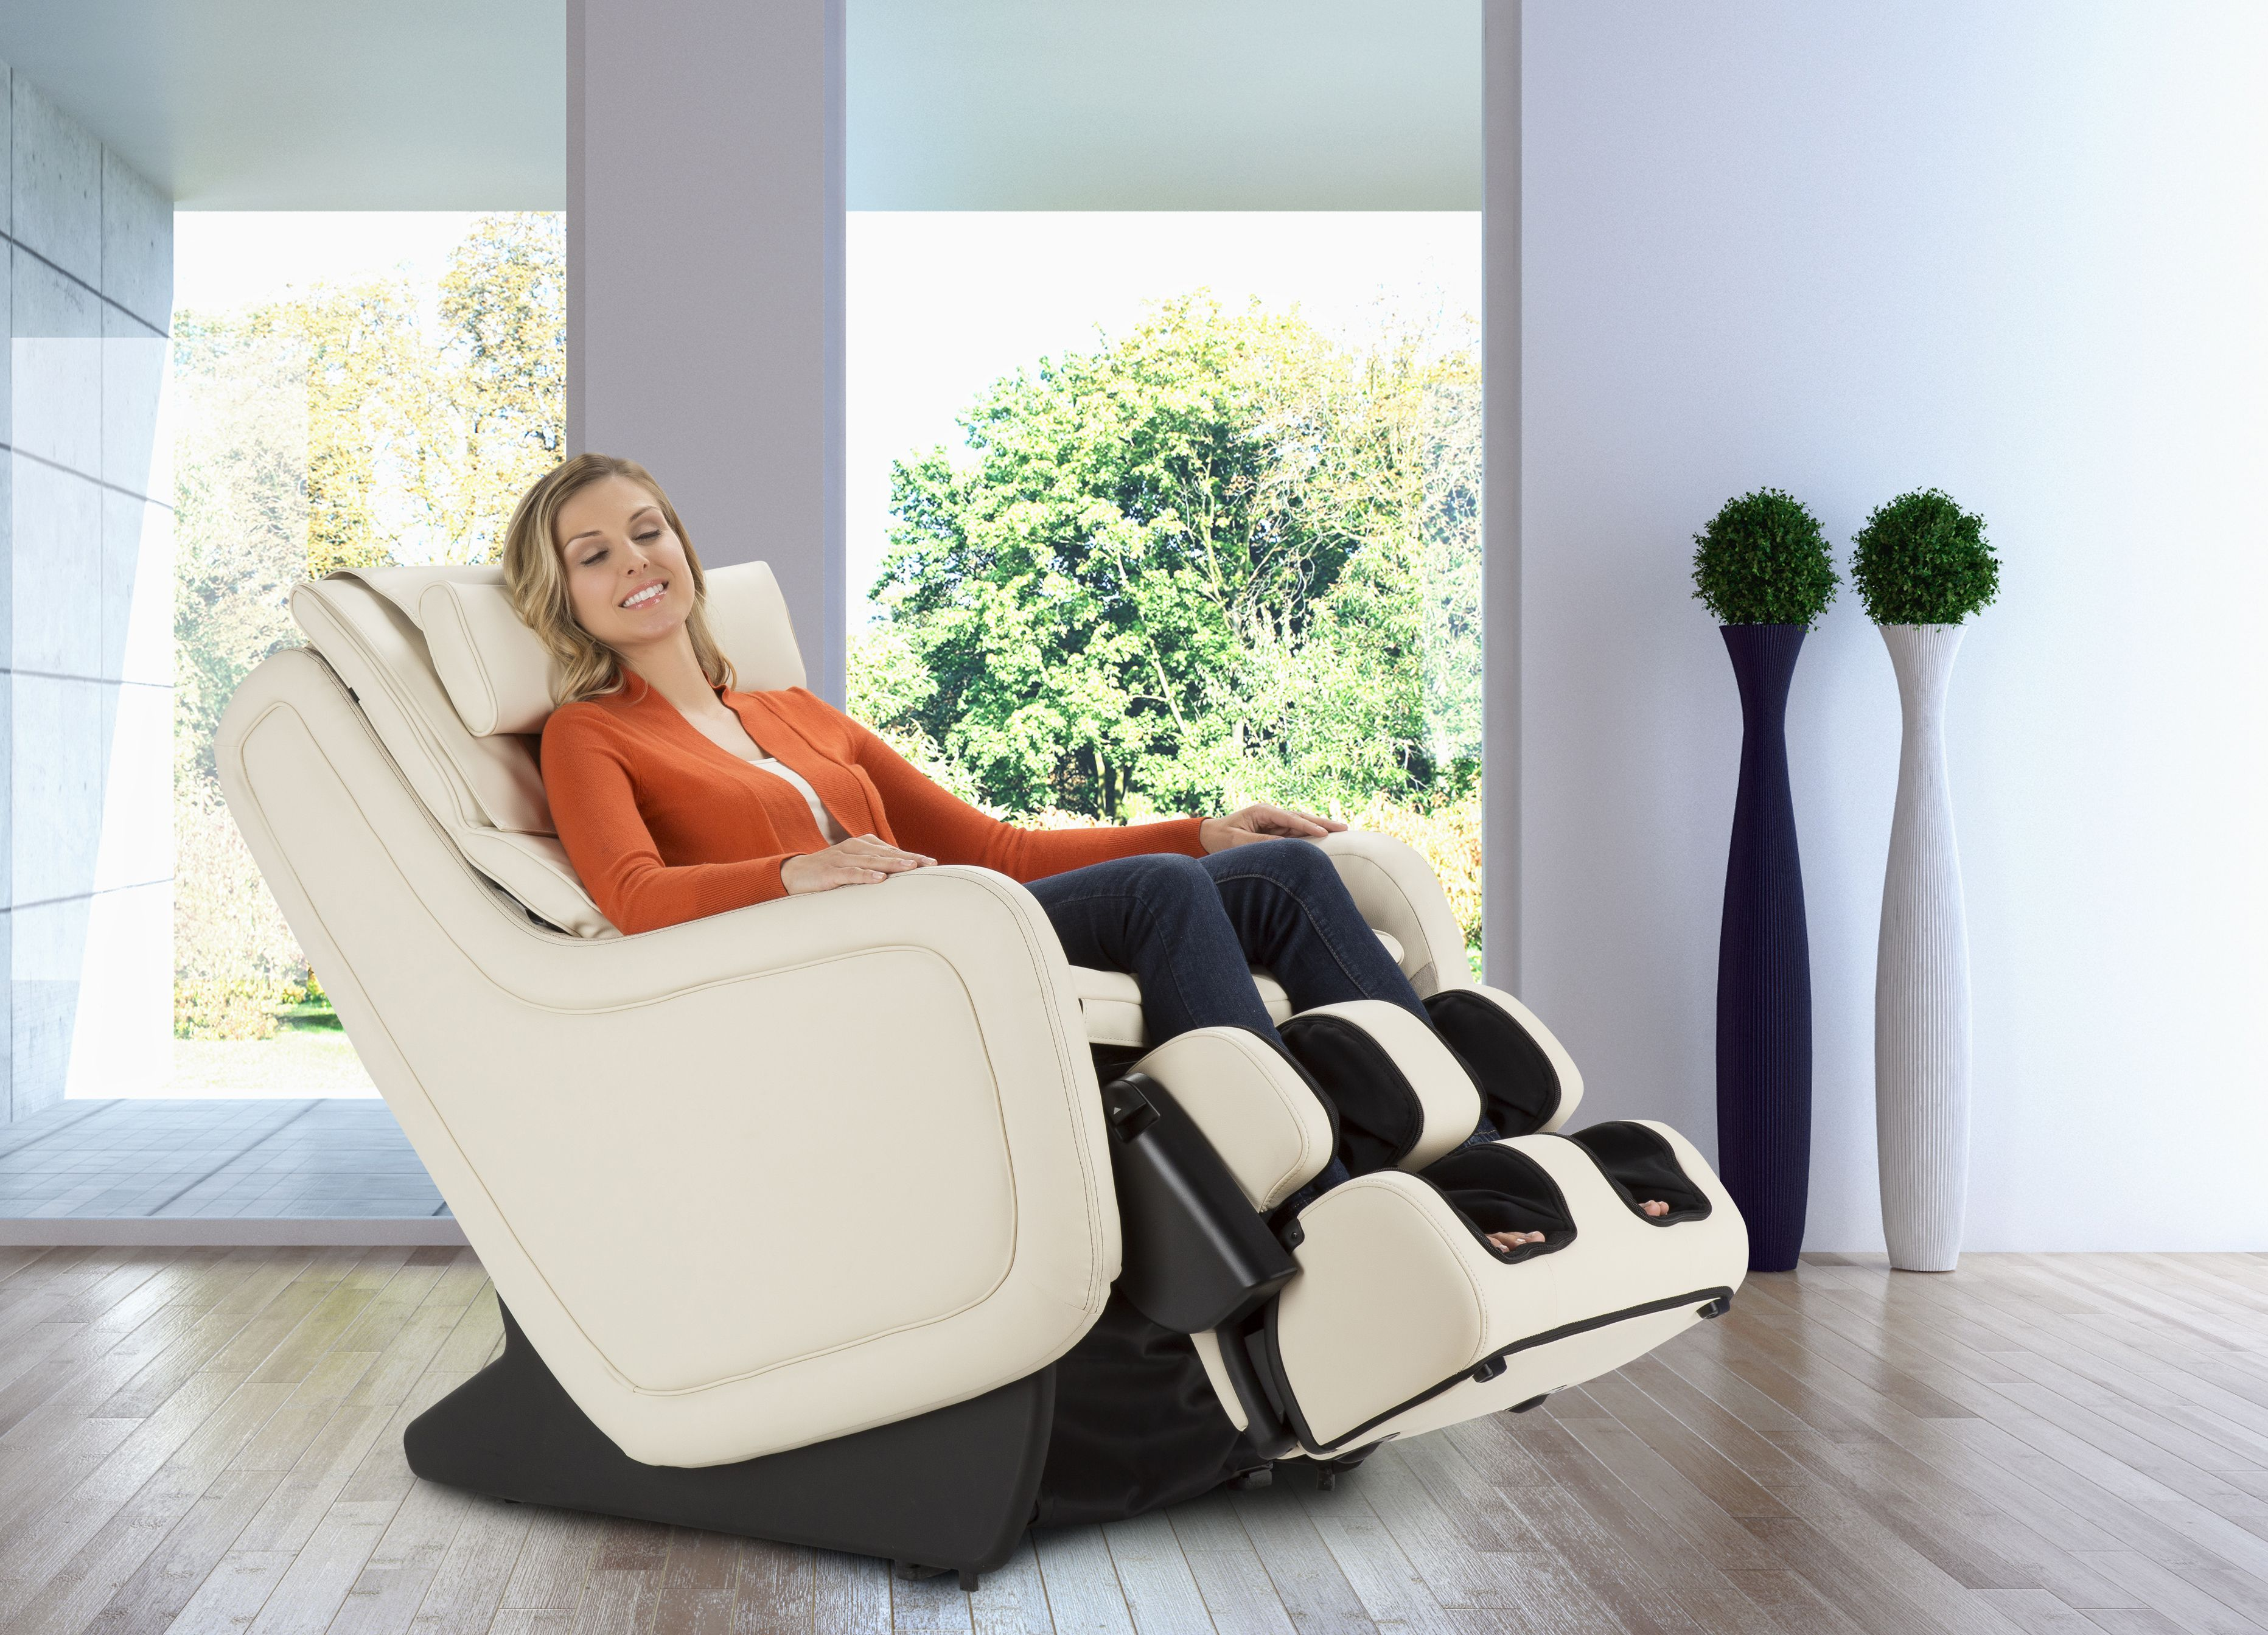 Available in Black, Espresso, and Cream. Massage chair